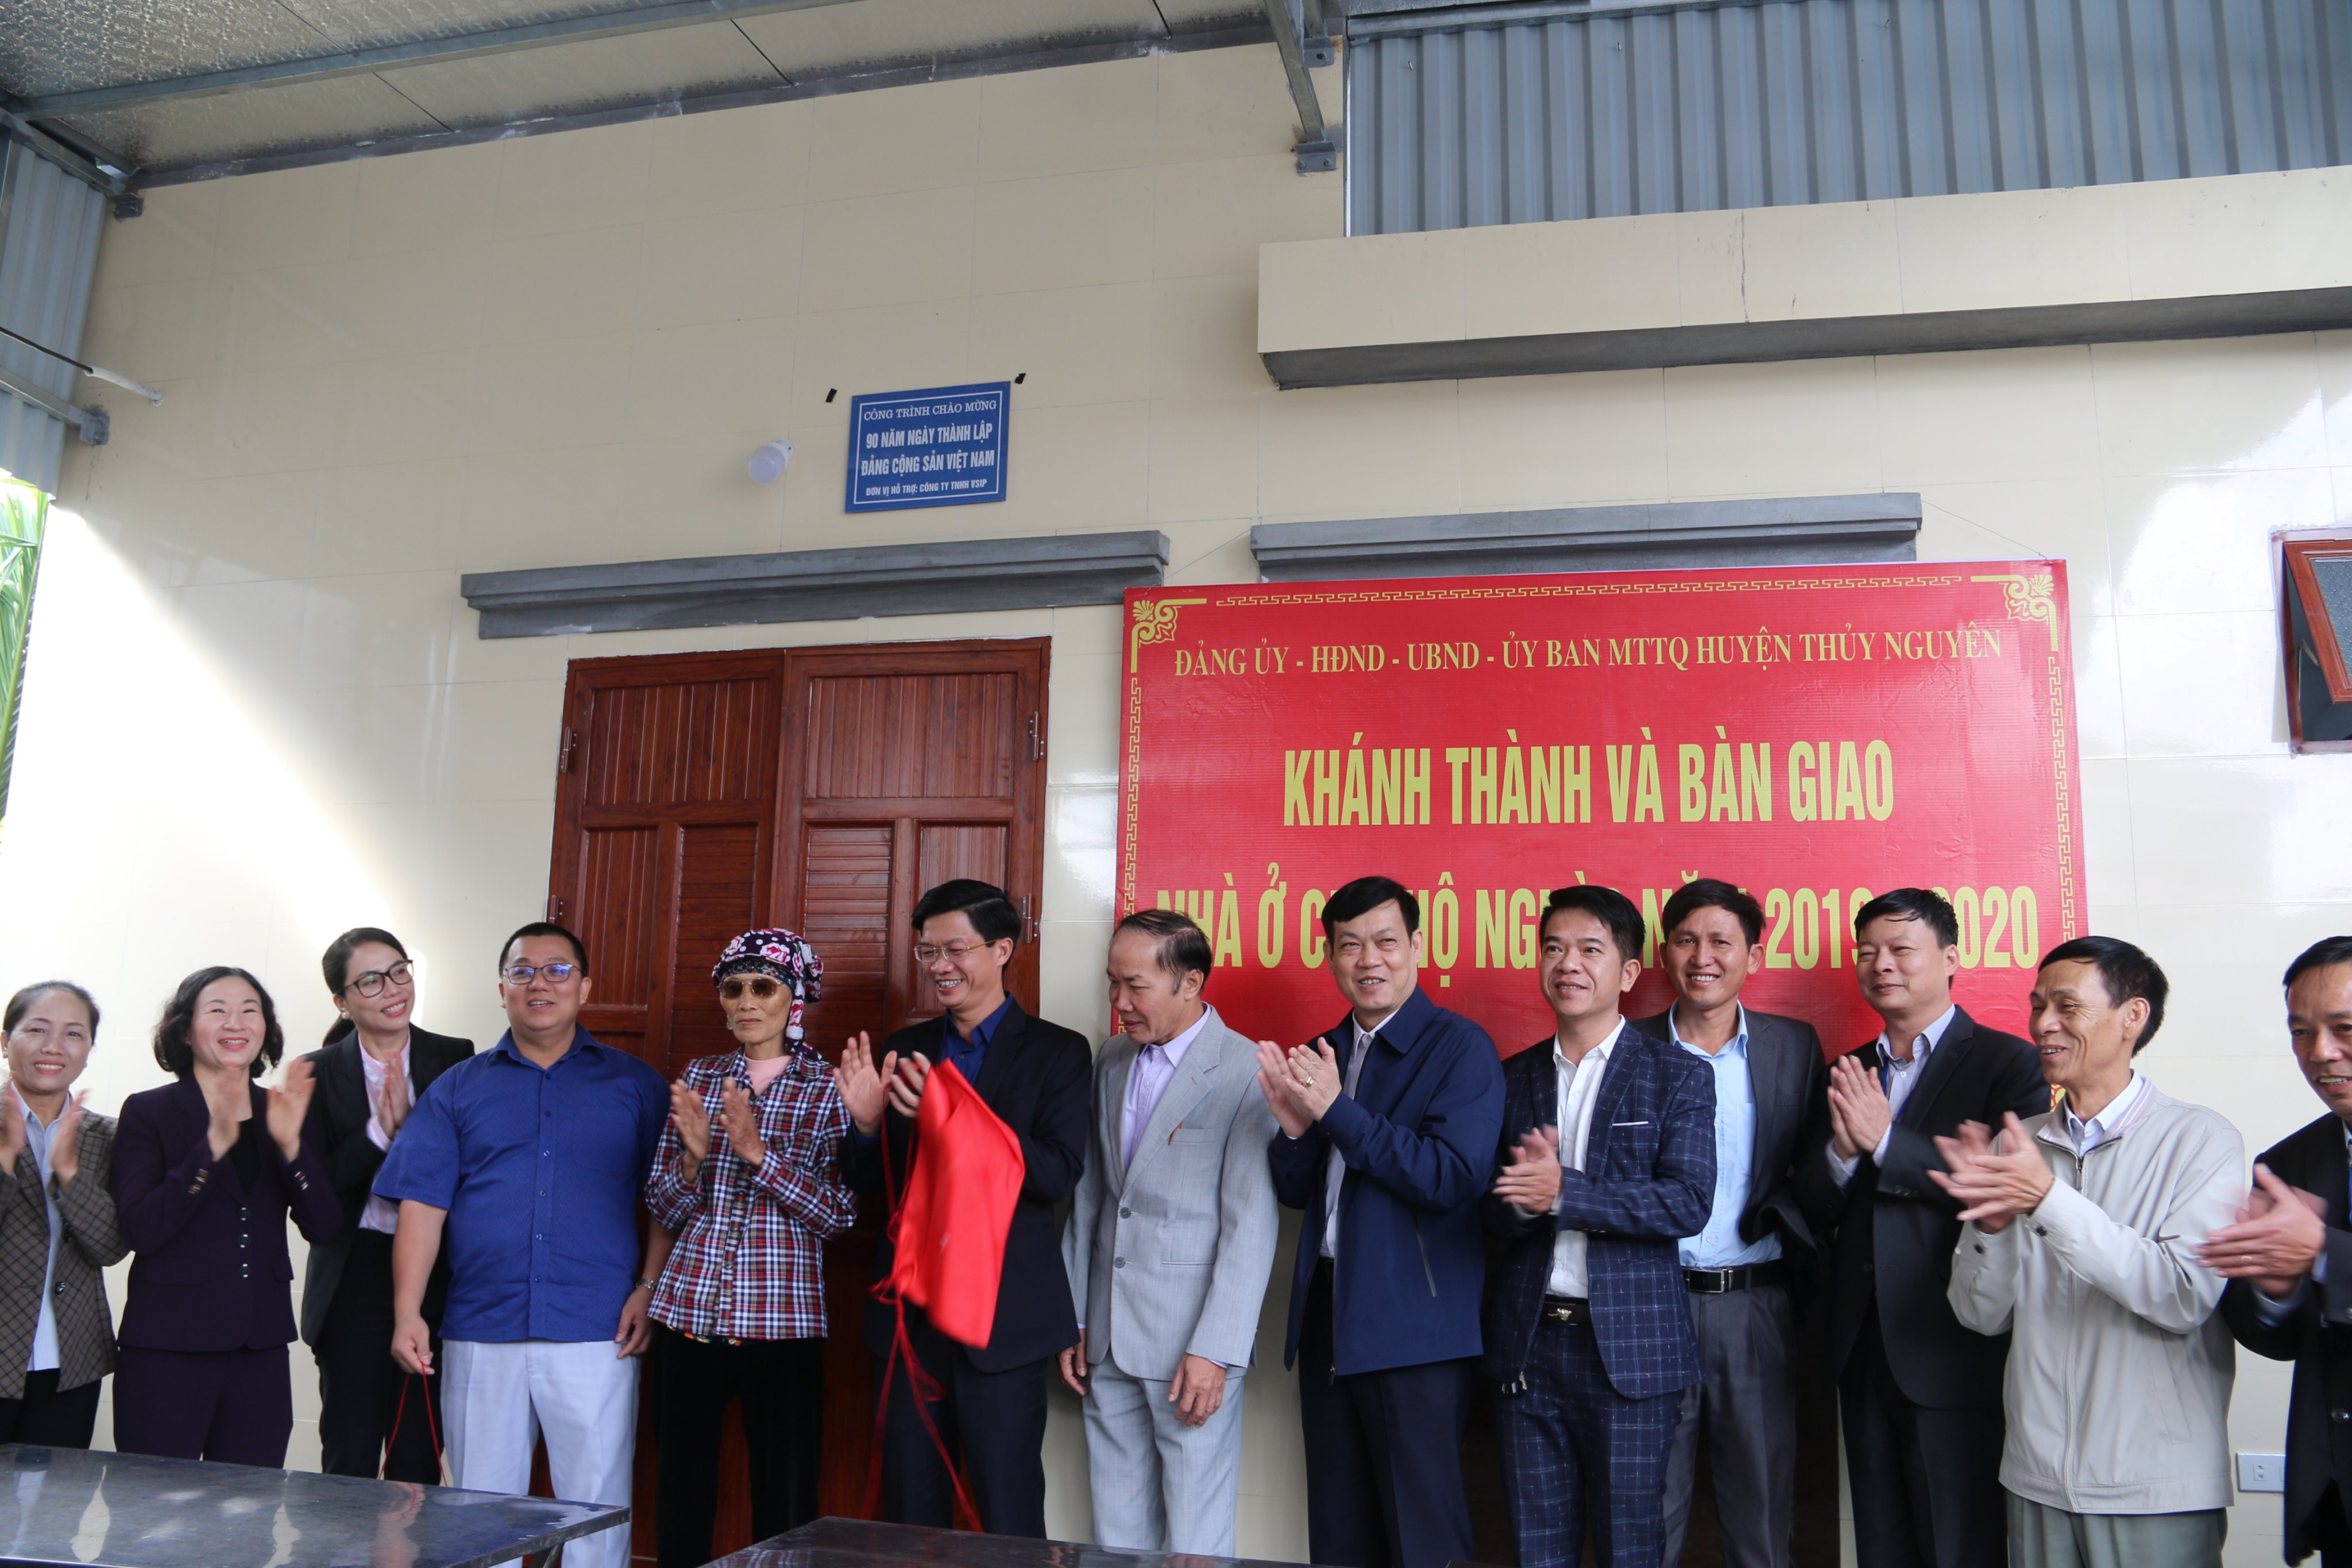 VSIP HAI PHONG SPONSORED 520 MIL VND TO BUILD HOUSES FOR THE POOR IN THUY NGUYEN